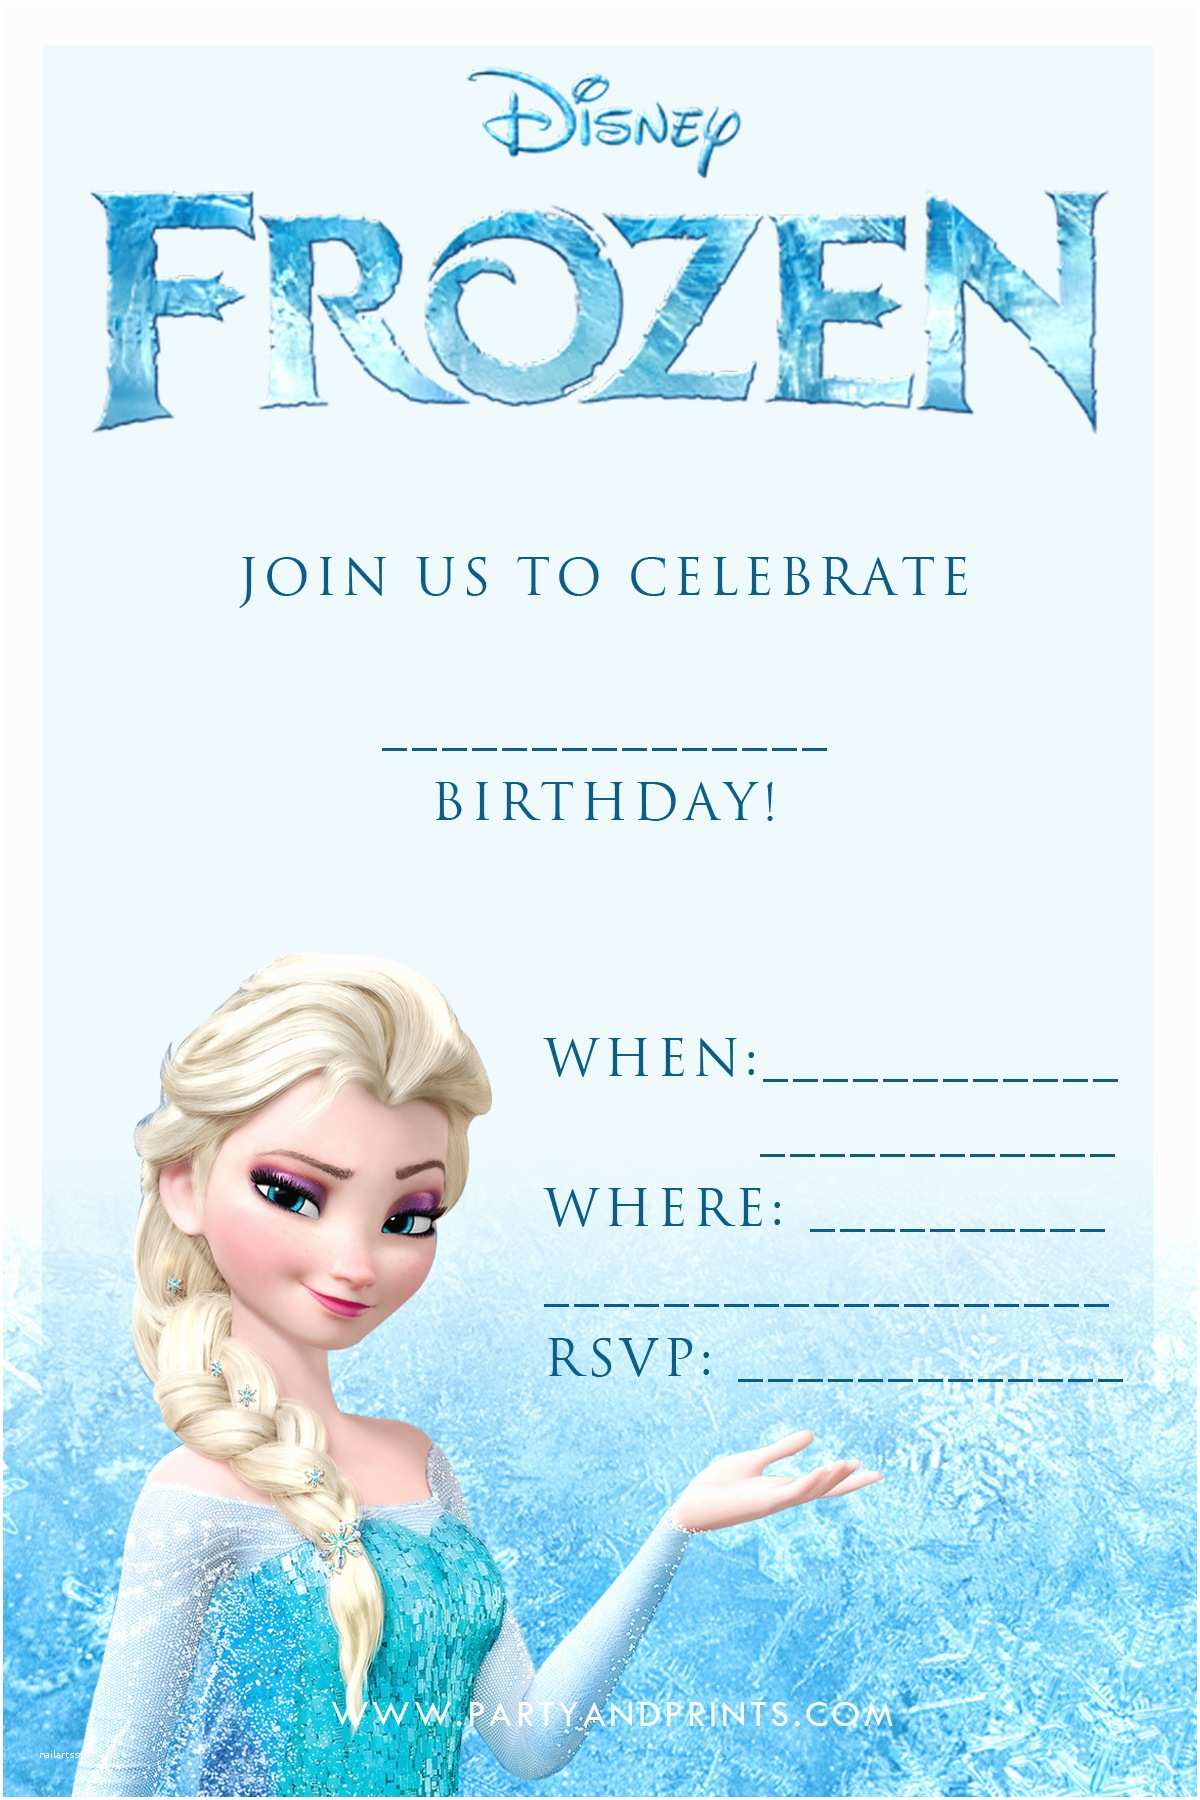 Walgreens Birthday Invitations the Walgreens Birthday Invites Free Templates